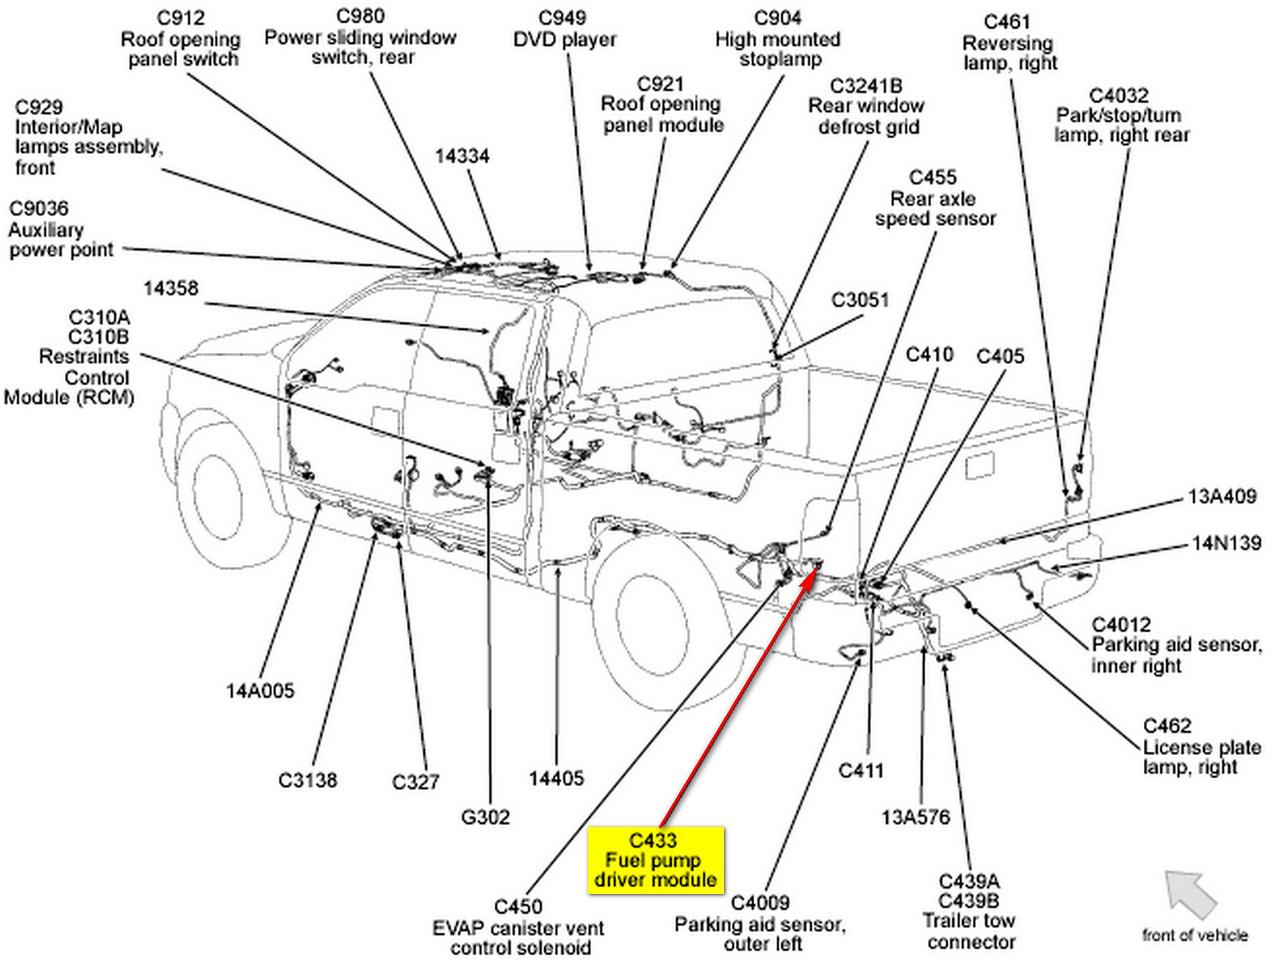 1990 ford f150 fuel system diagram heart anterior aspect 95 line free engine image for user manual